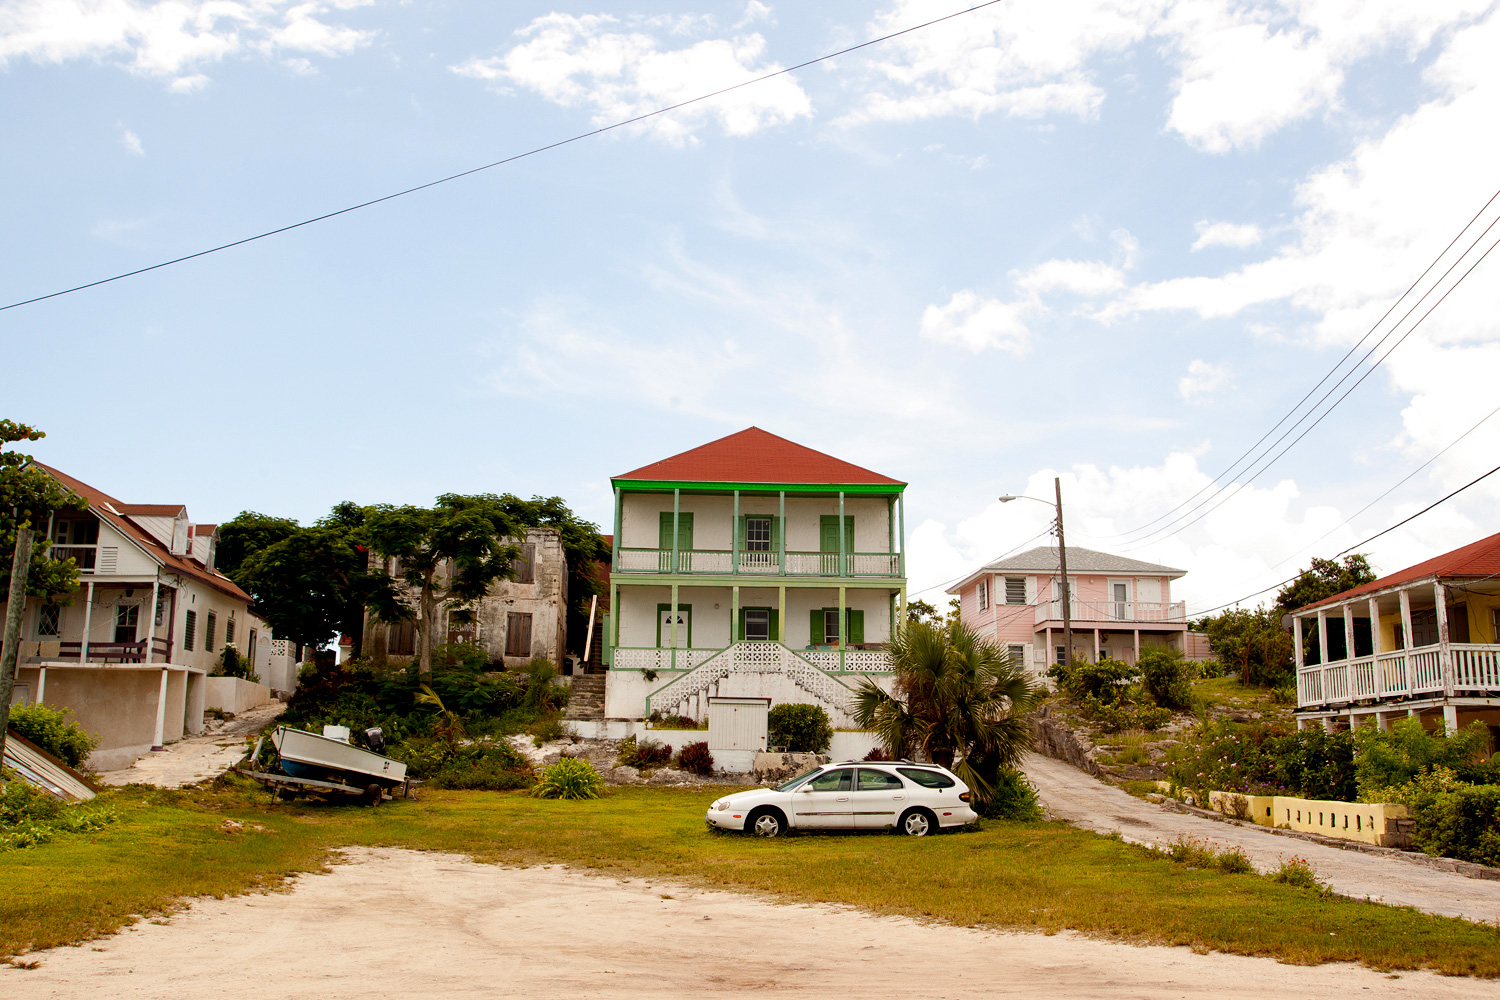 savannah_sound_eleuthera-6